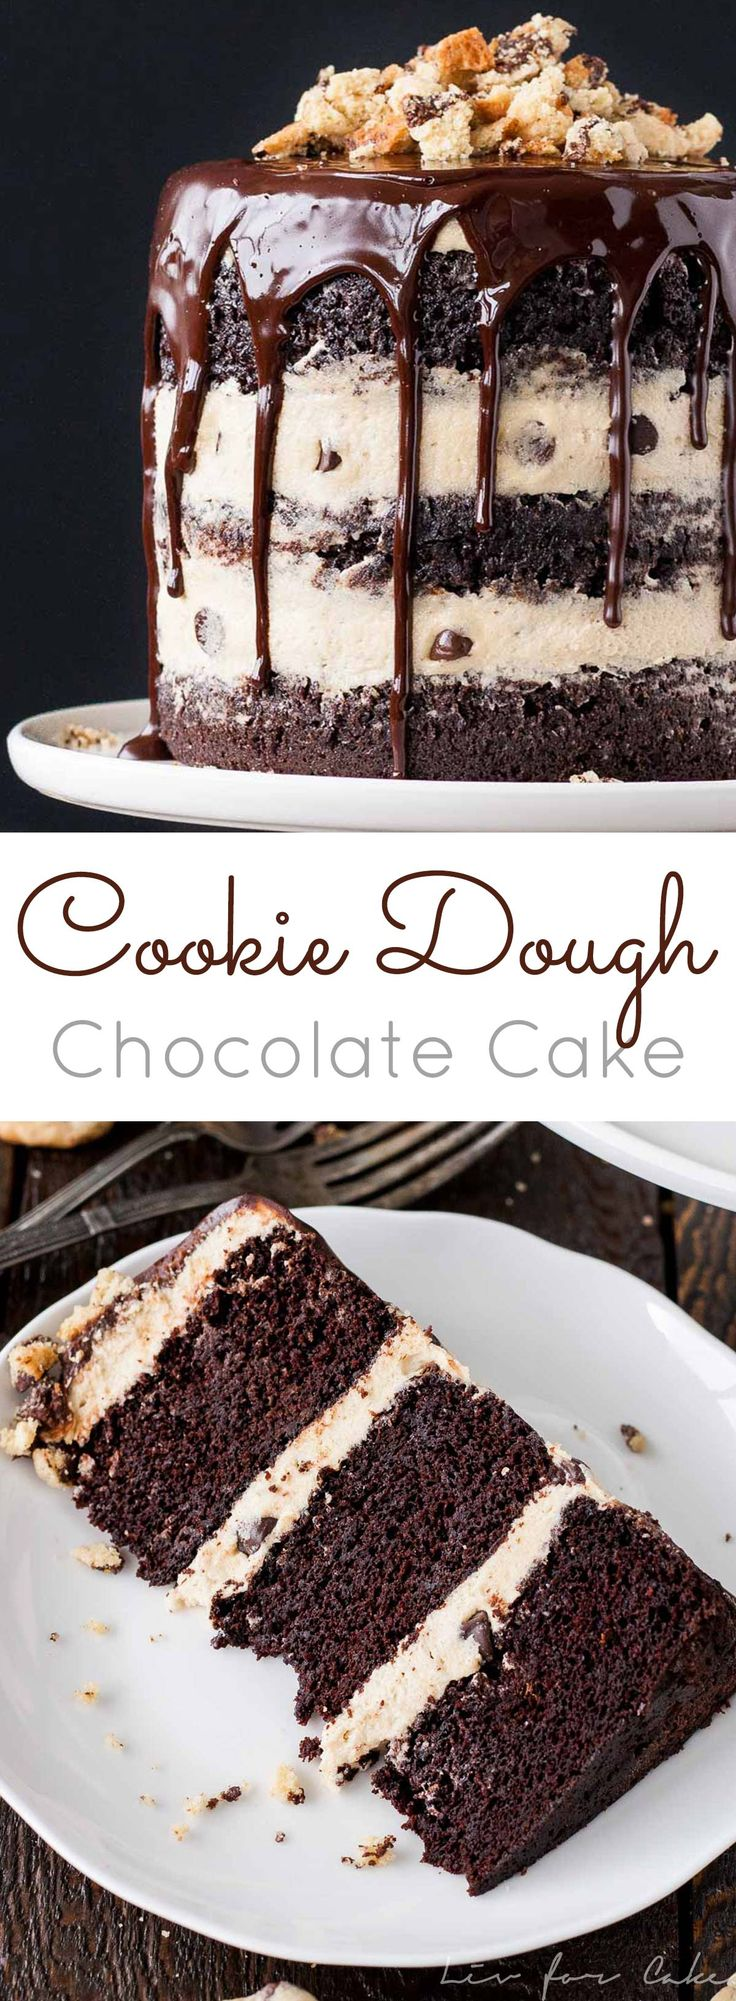 Combine classic chocolate cake with your favourite guilty pleasure in this Cookie Dough Chocolate Cake!